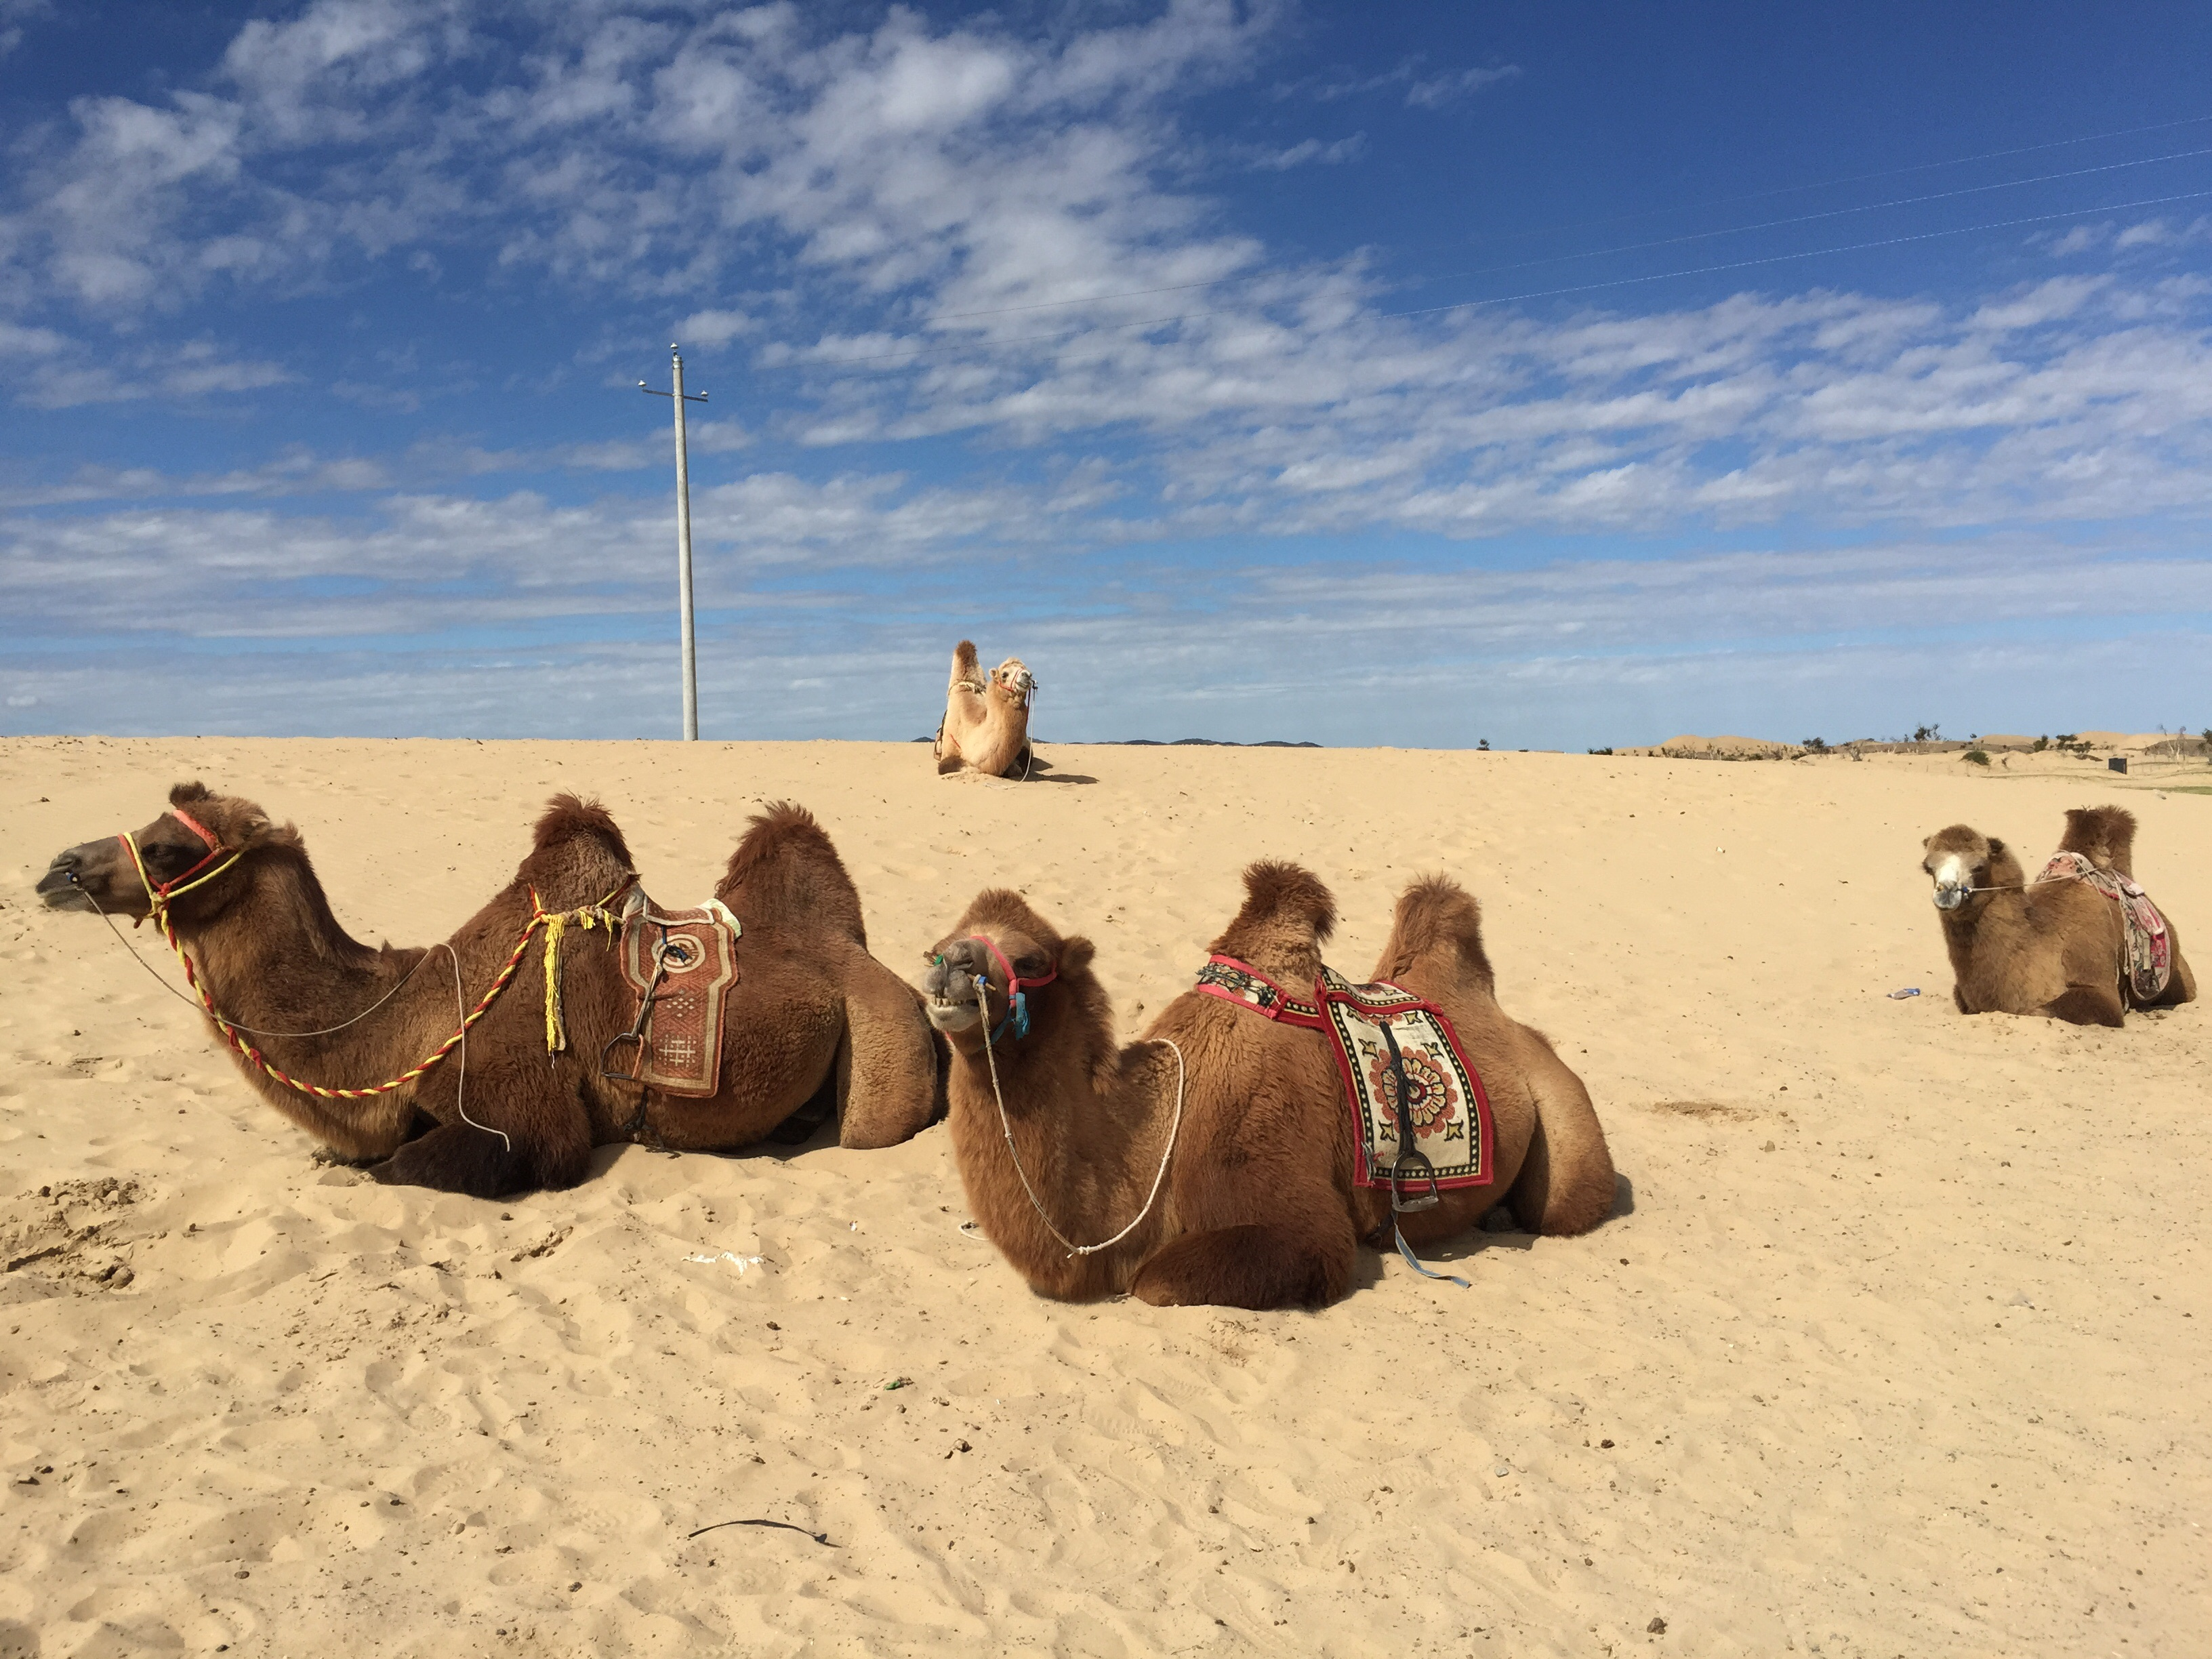 Here are the camels in their resting position. (I'm just assuming they're resting, really.) This is what they were doing when we climbed on.